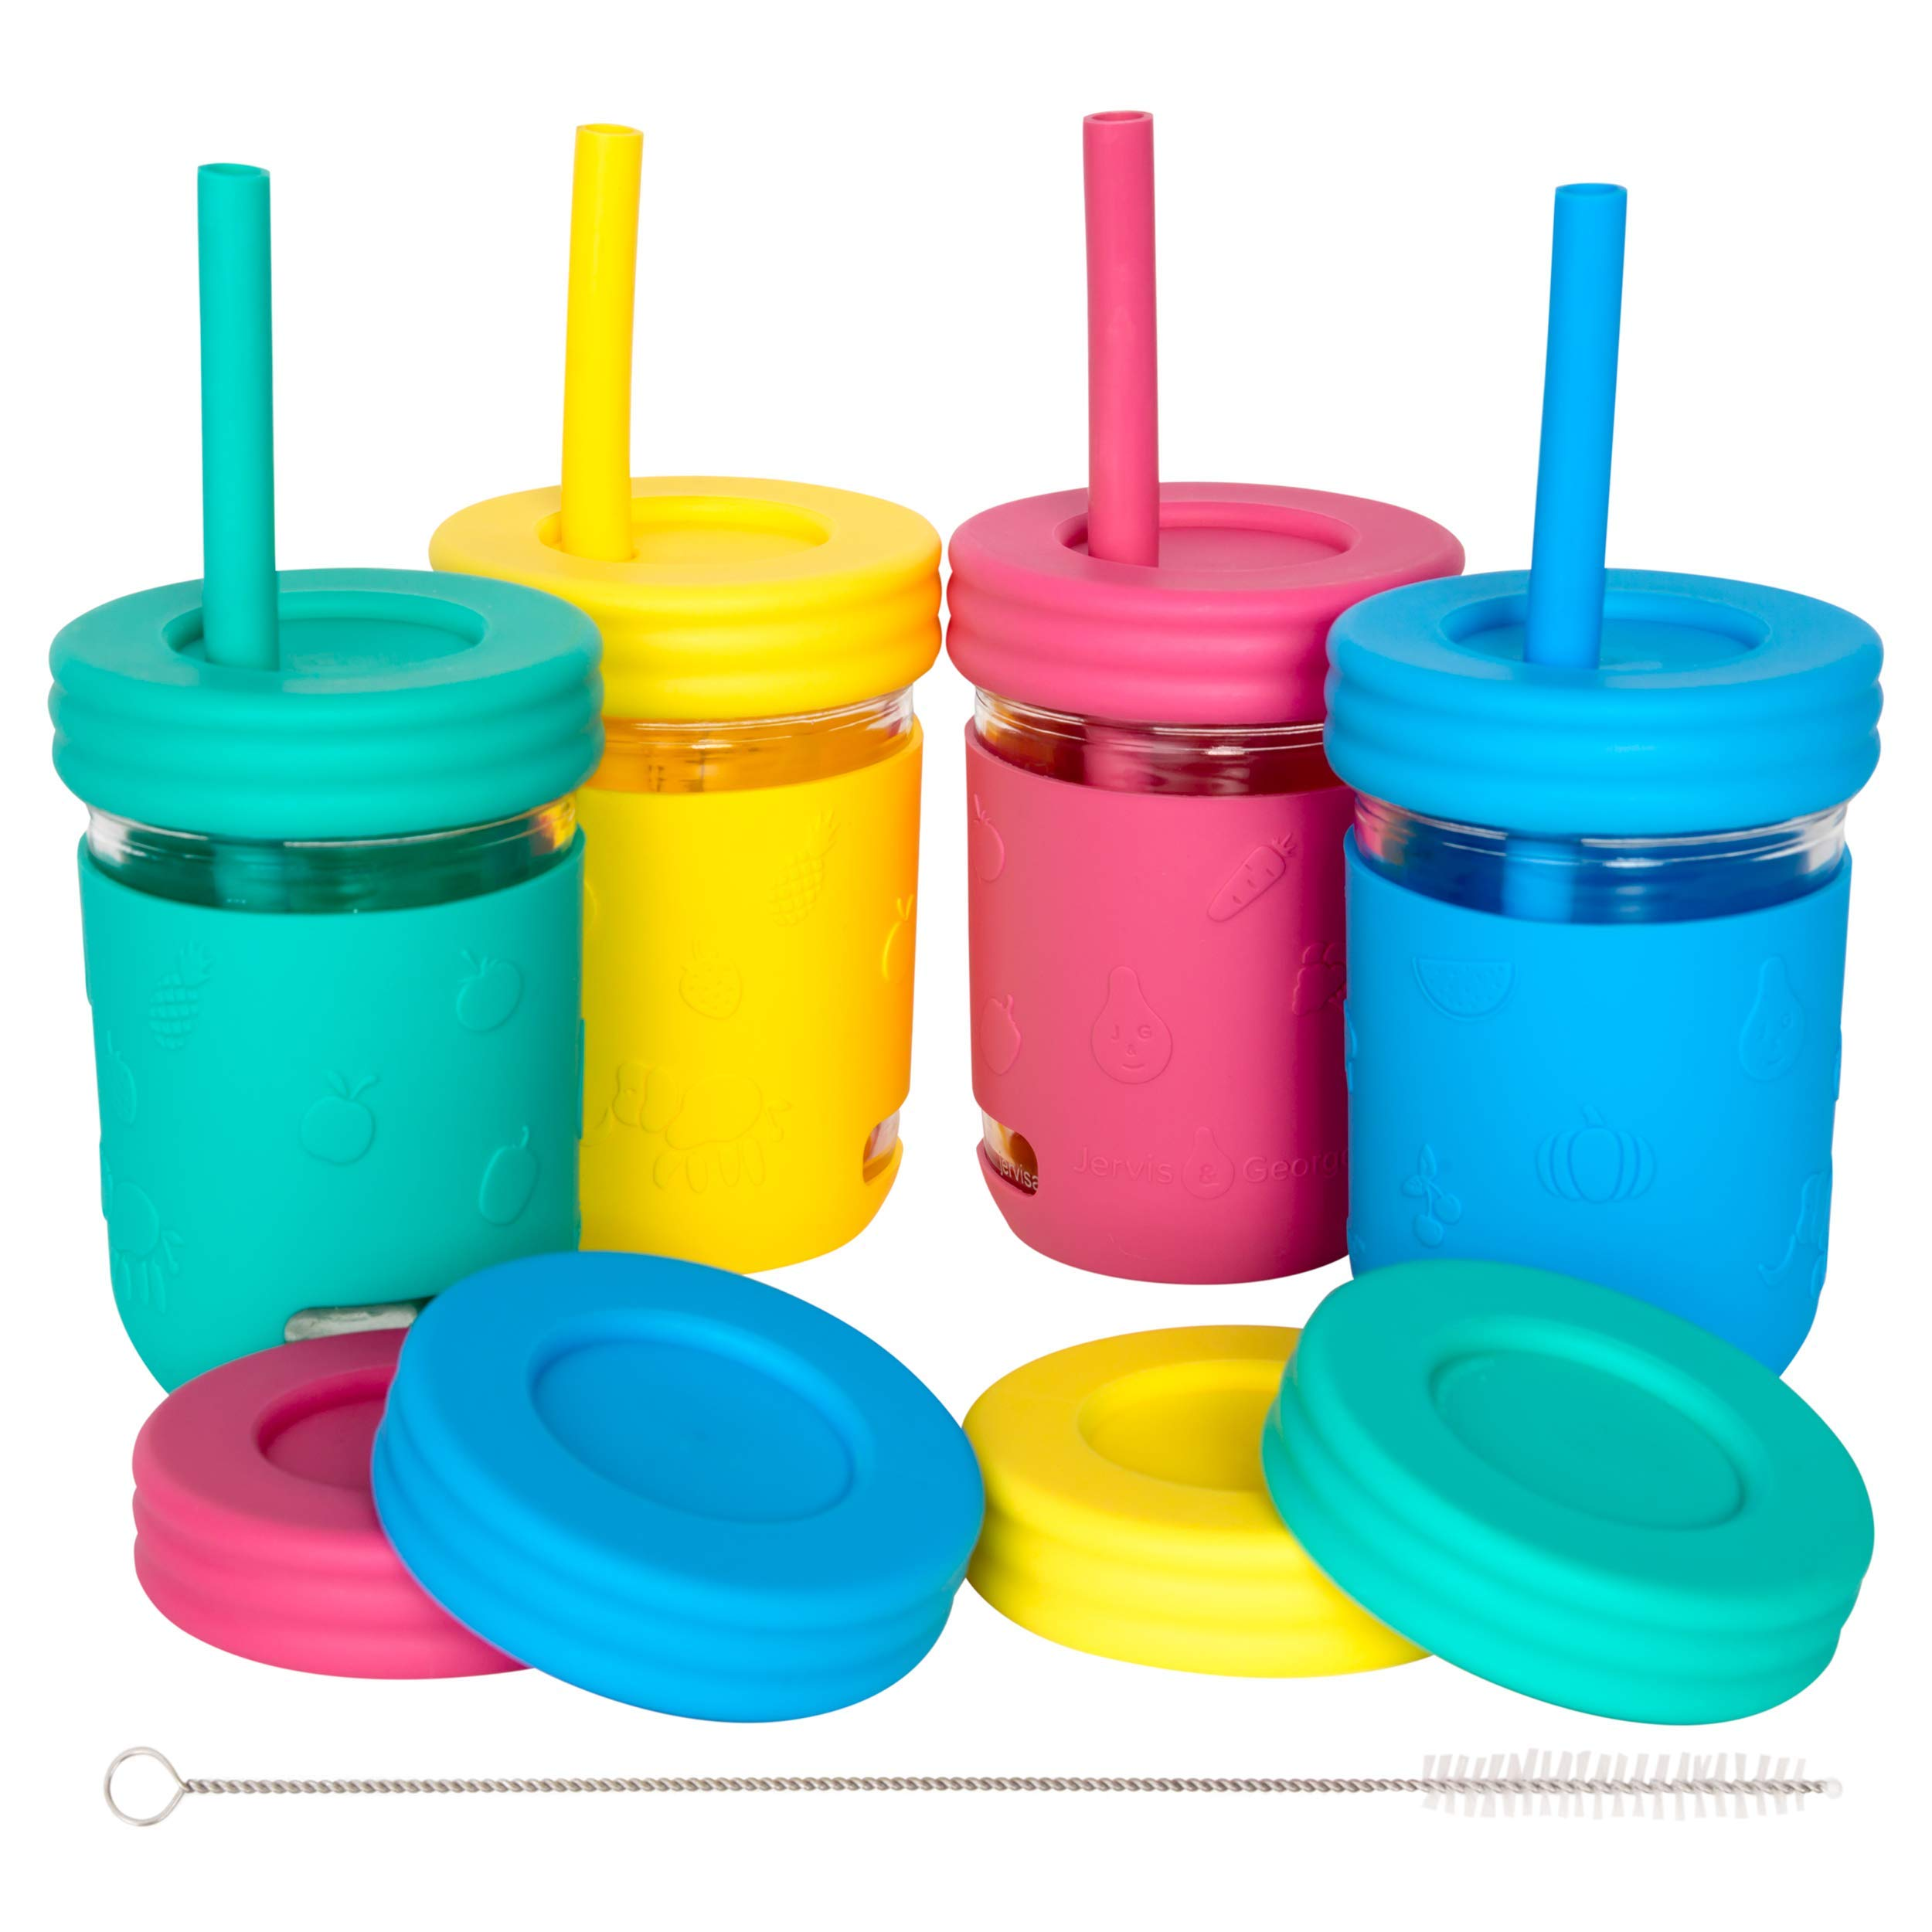 Kids 8oz Glass Mason Jar Drinking Cups with Silcone Sleeves + Straw Lids + Leak Proof Regular Lids + Silicone Straws - Spill Proof, Sippy Cups for Toddlers, Kids Drinking Glasses, Food Storage-4 Pack